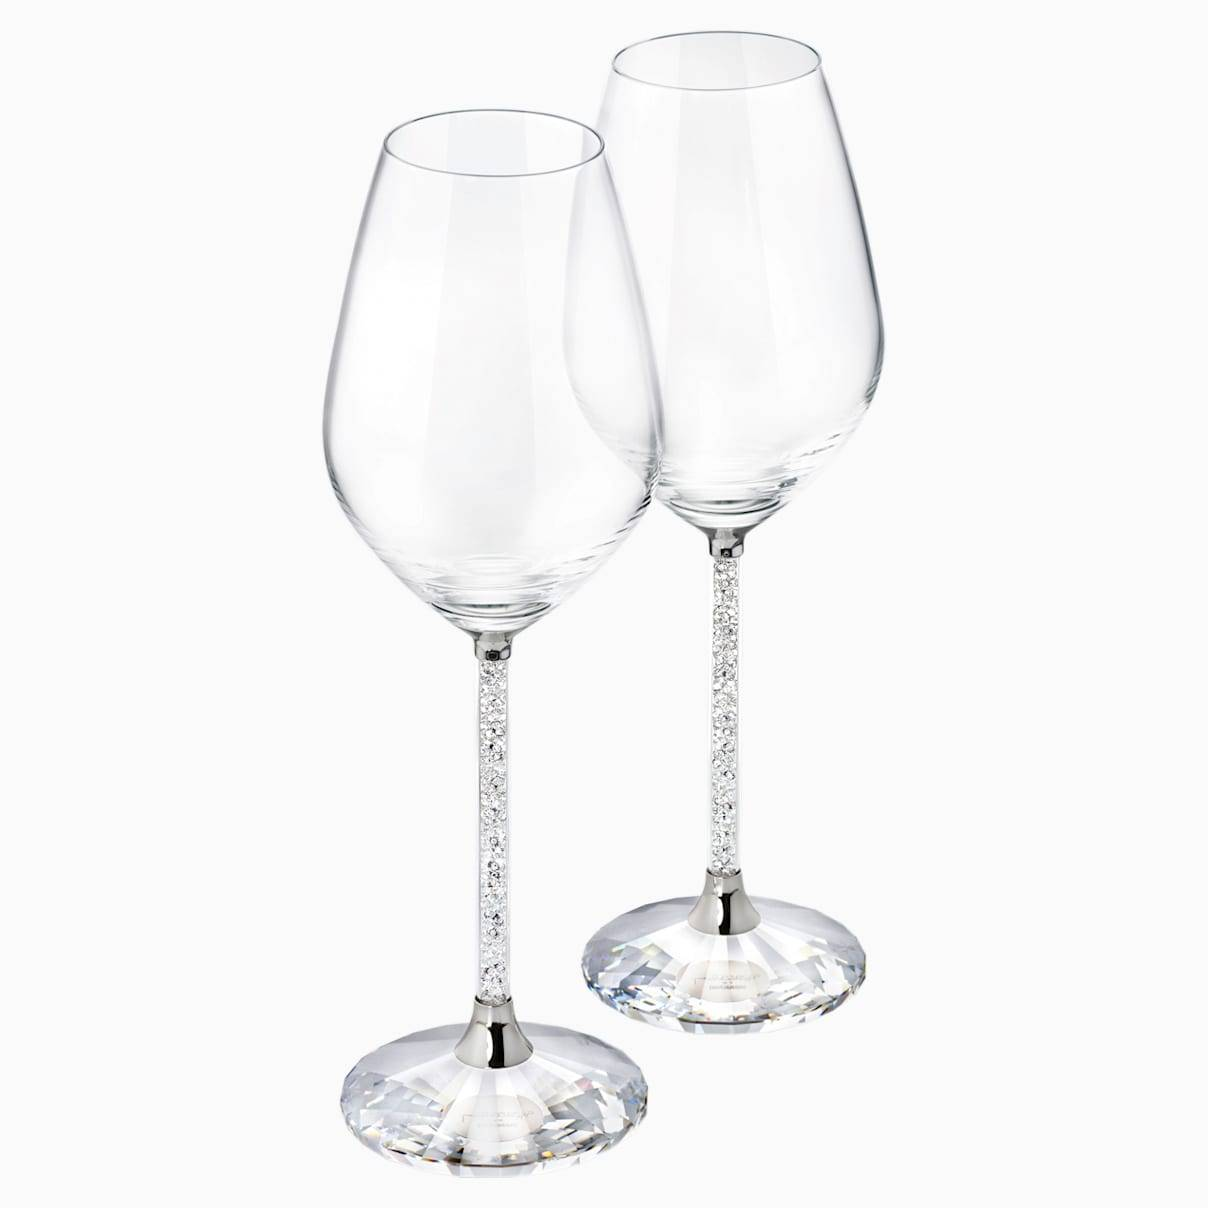 Swarovski Crystalline Wine Glasses (Set of 2)